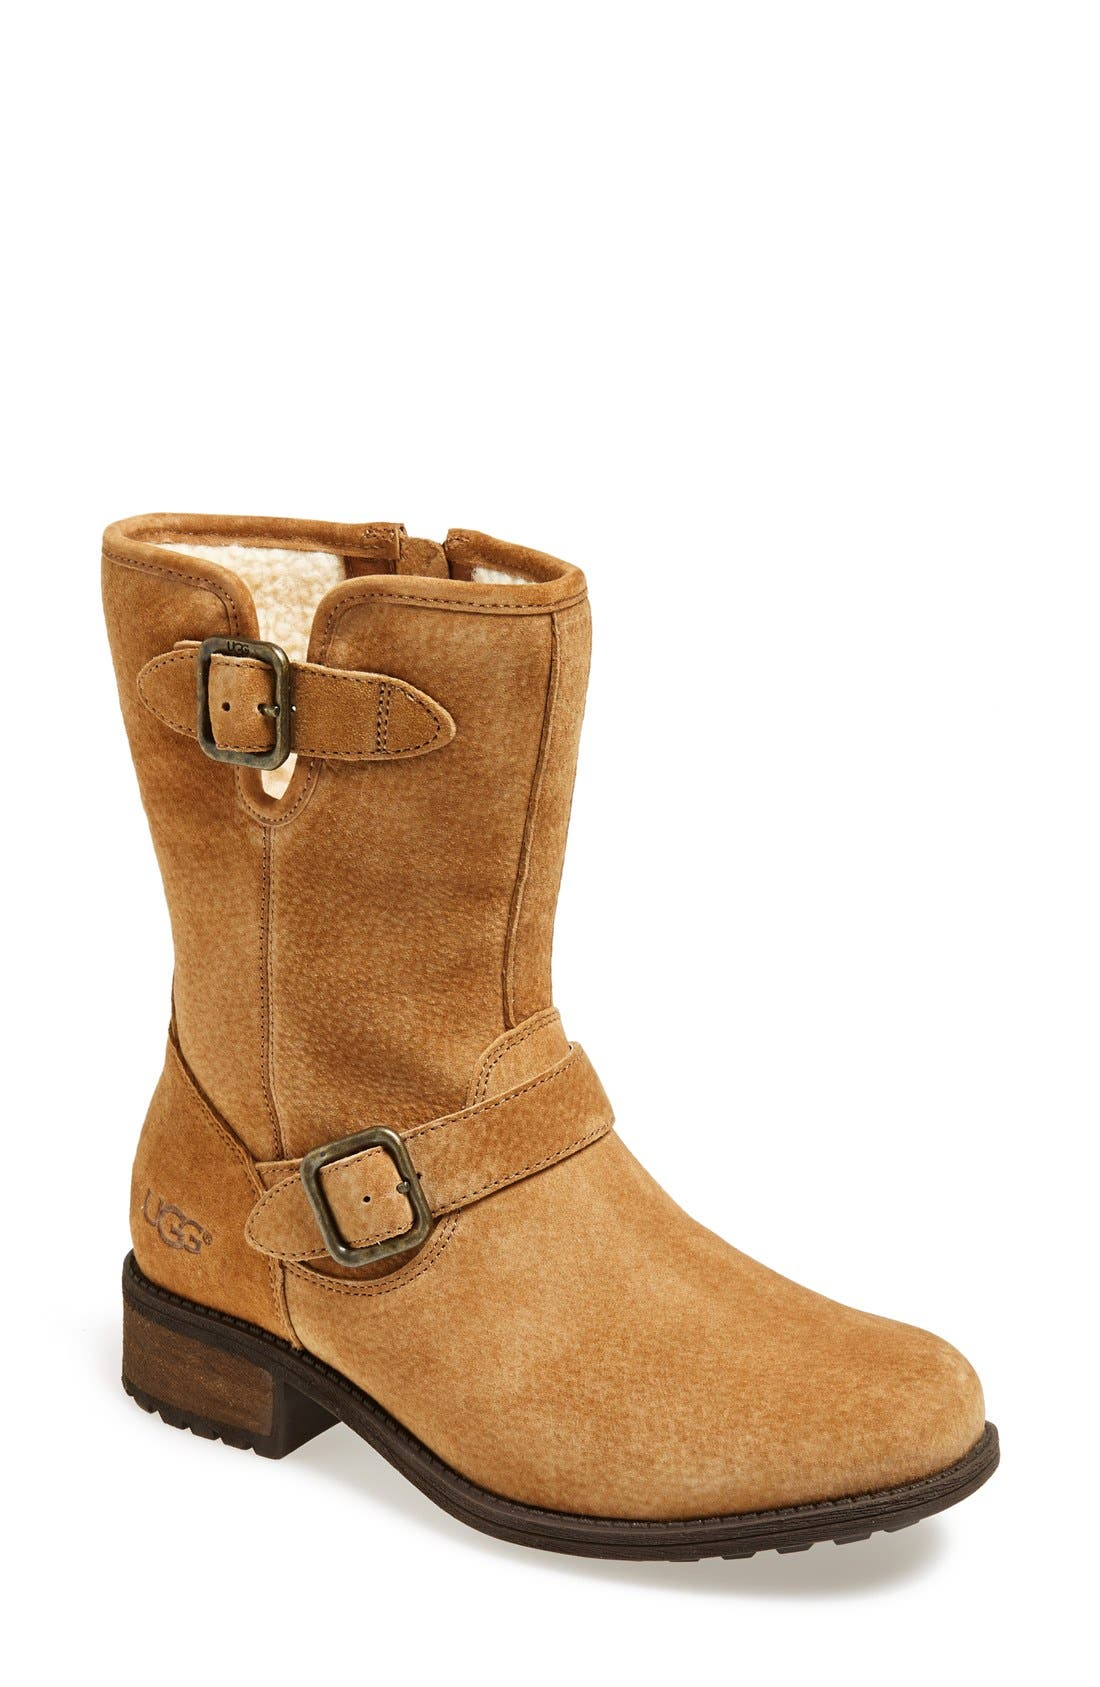 Main Image - UGG® 'Chaney' Water Resistant Suede Moto Boot (Women)